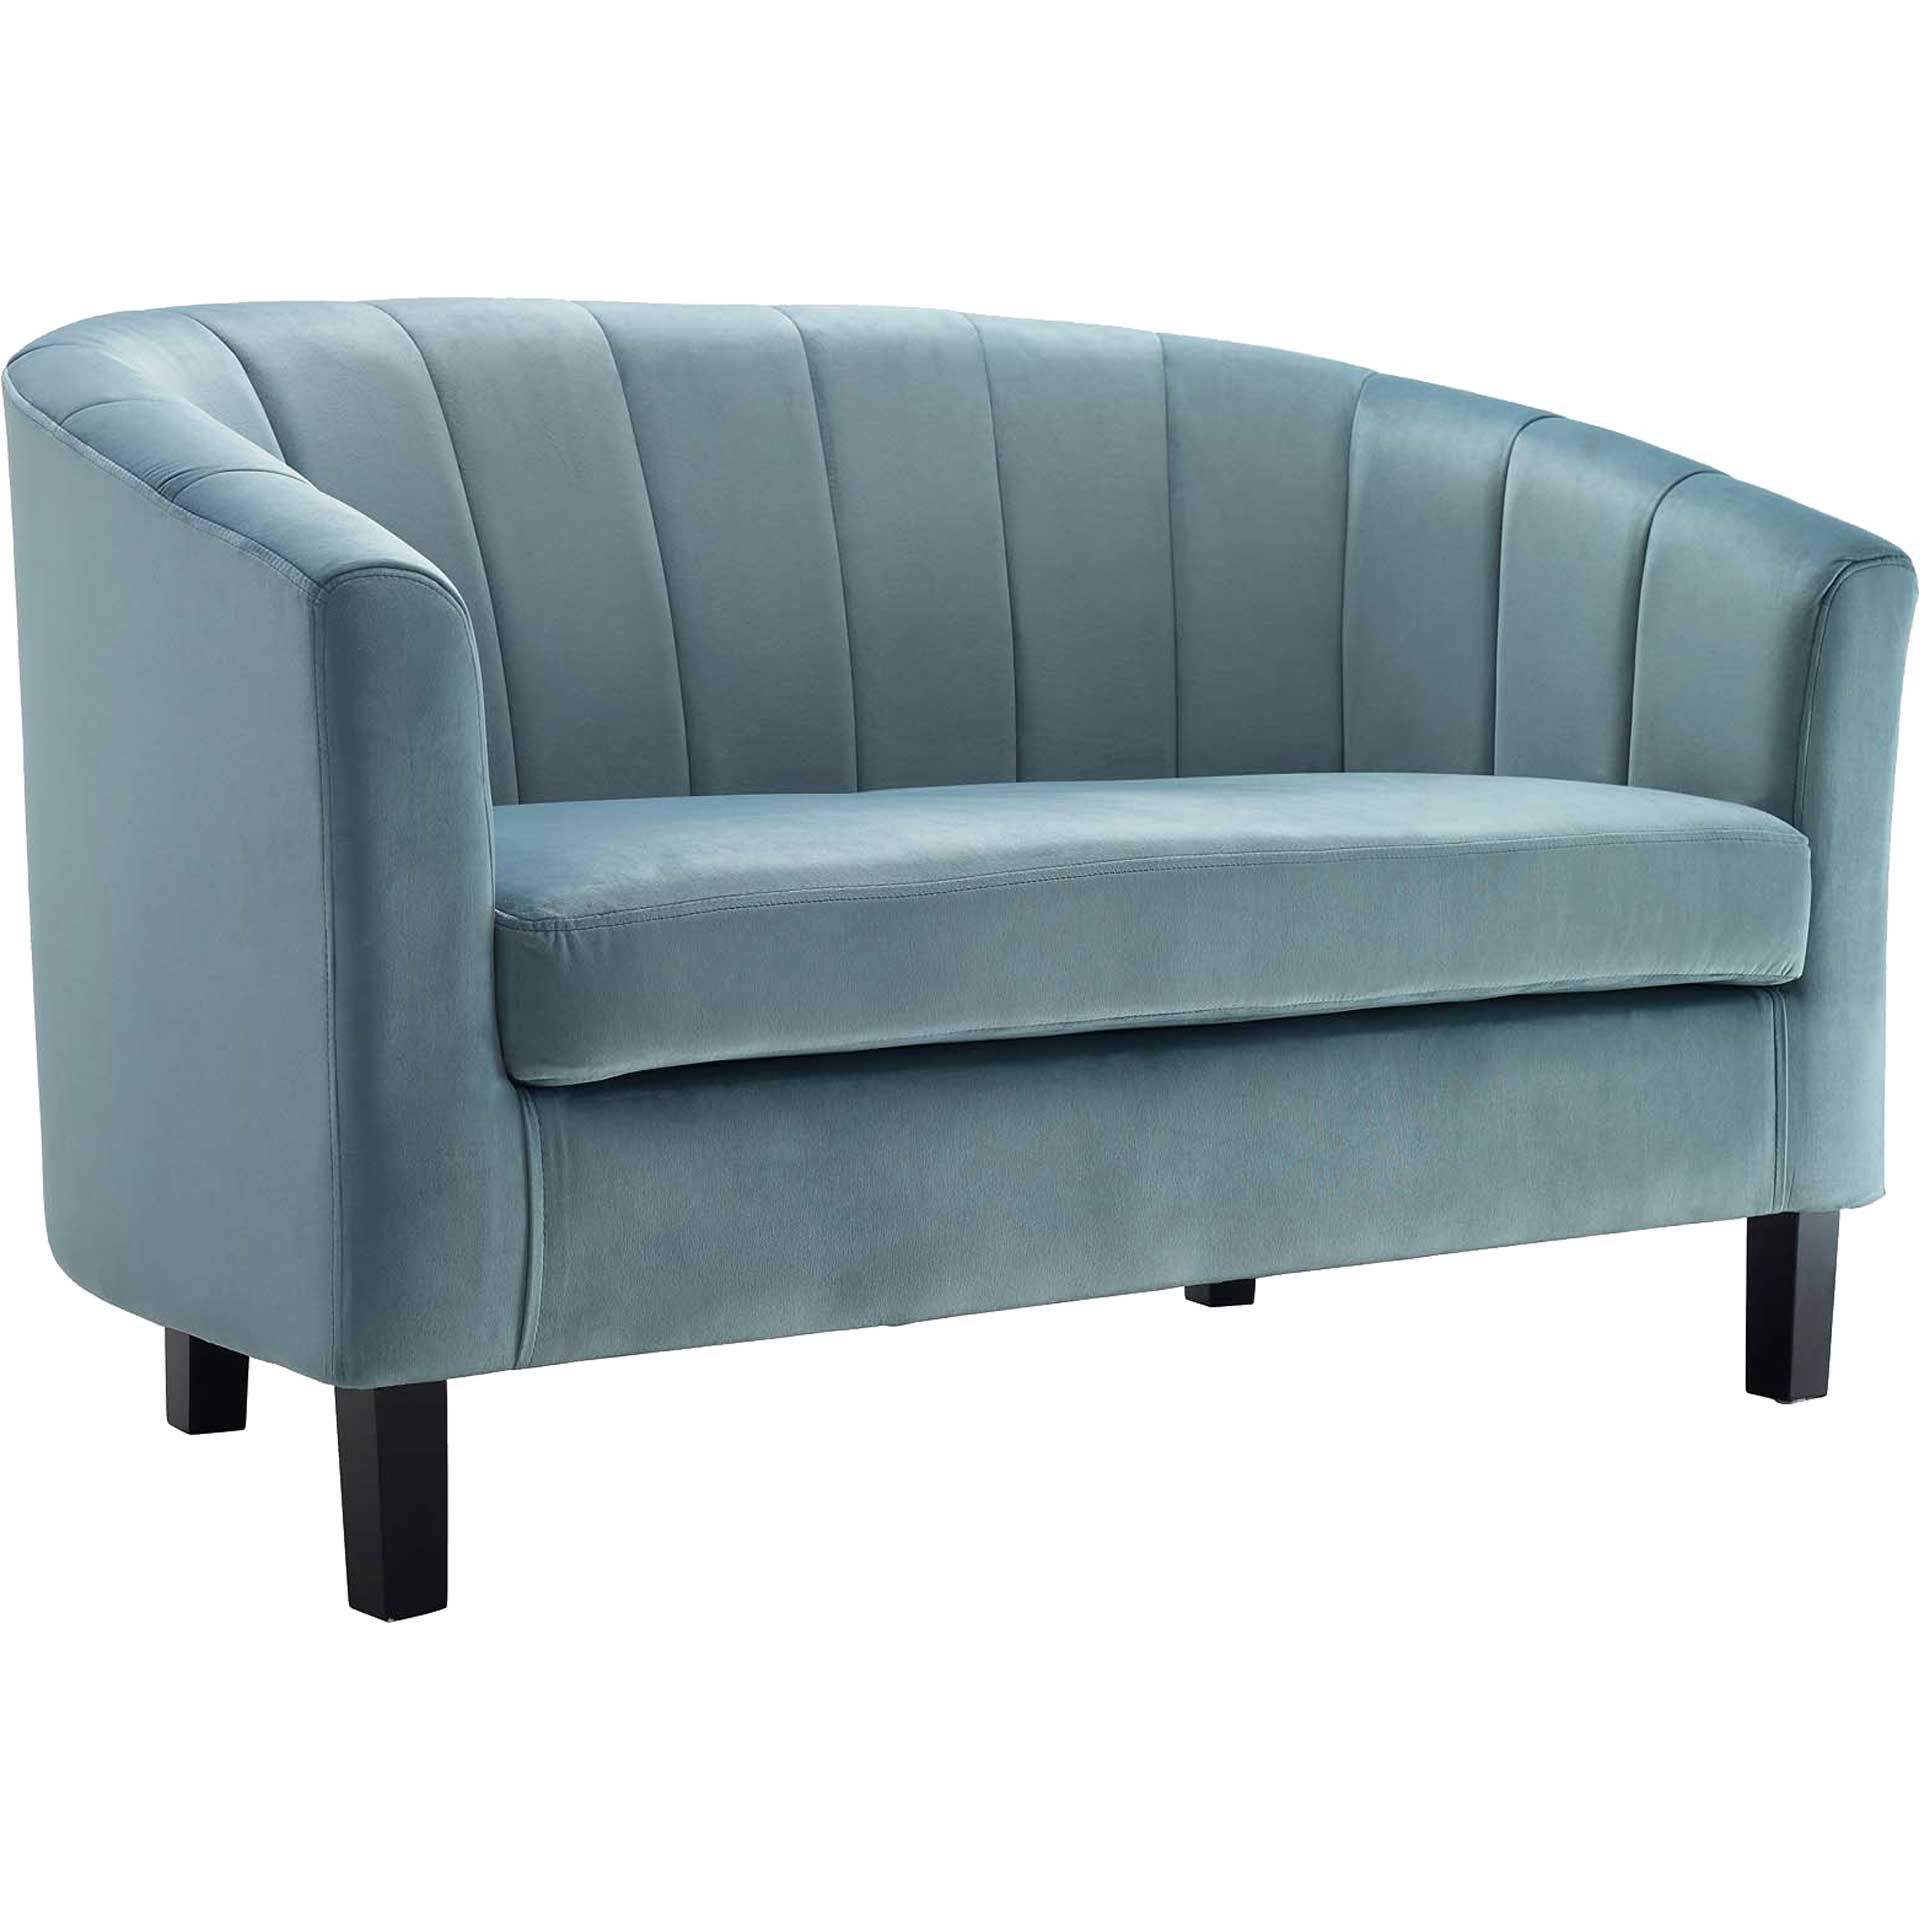 Paloma Channel Tufted Velvet Sofa Light Blue